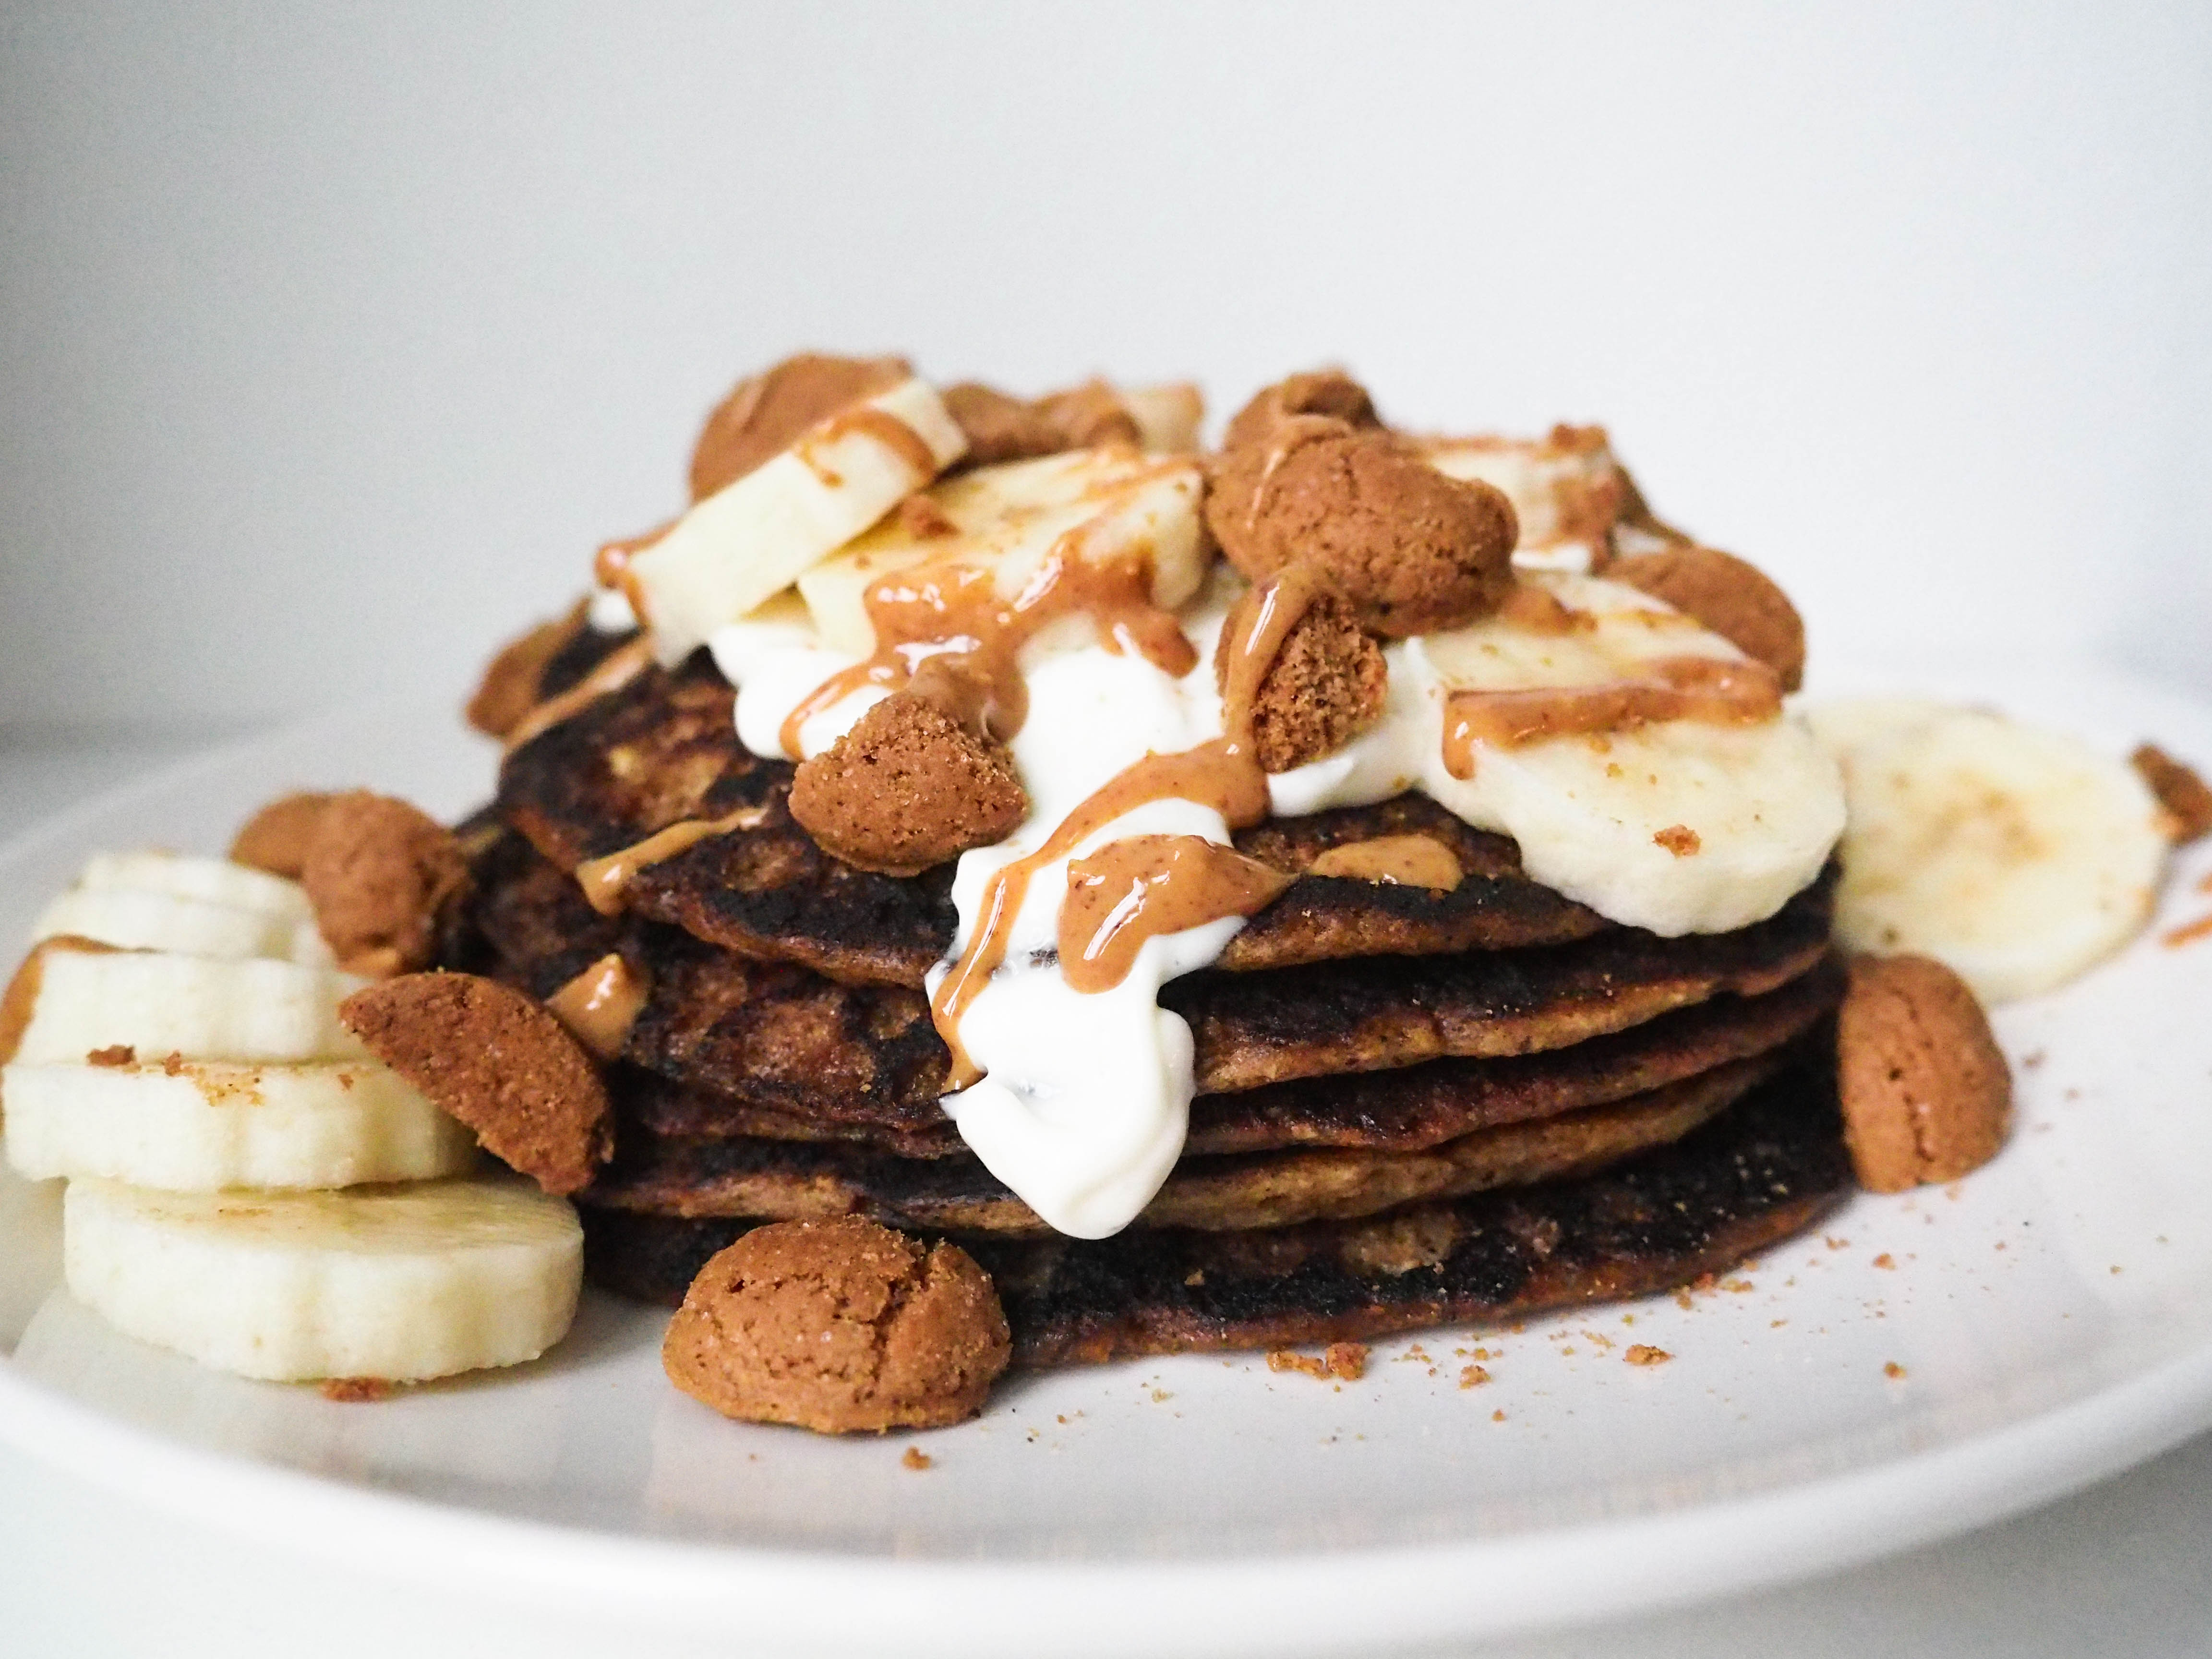 Pepernoten Pancake Stack with Quark, Peanut Butter Drizzle and Banana Slices